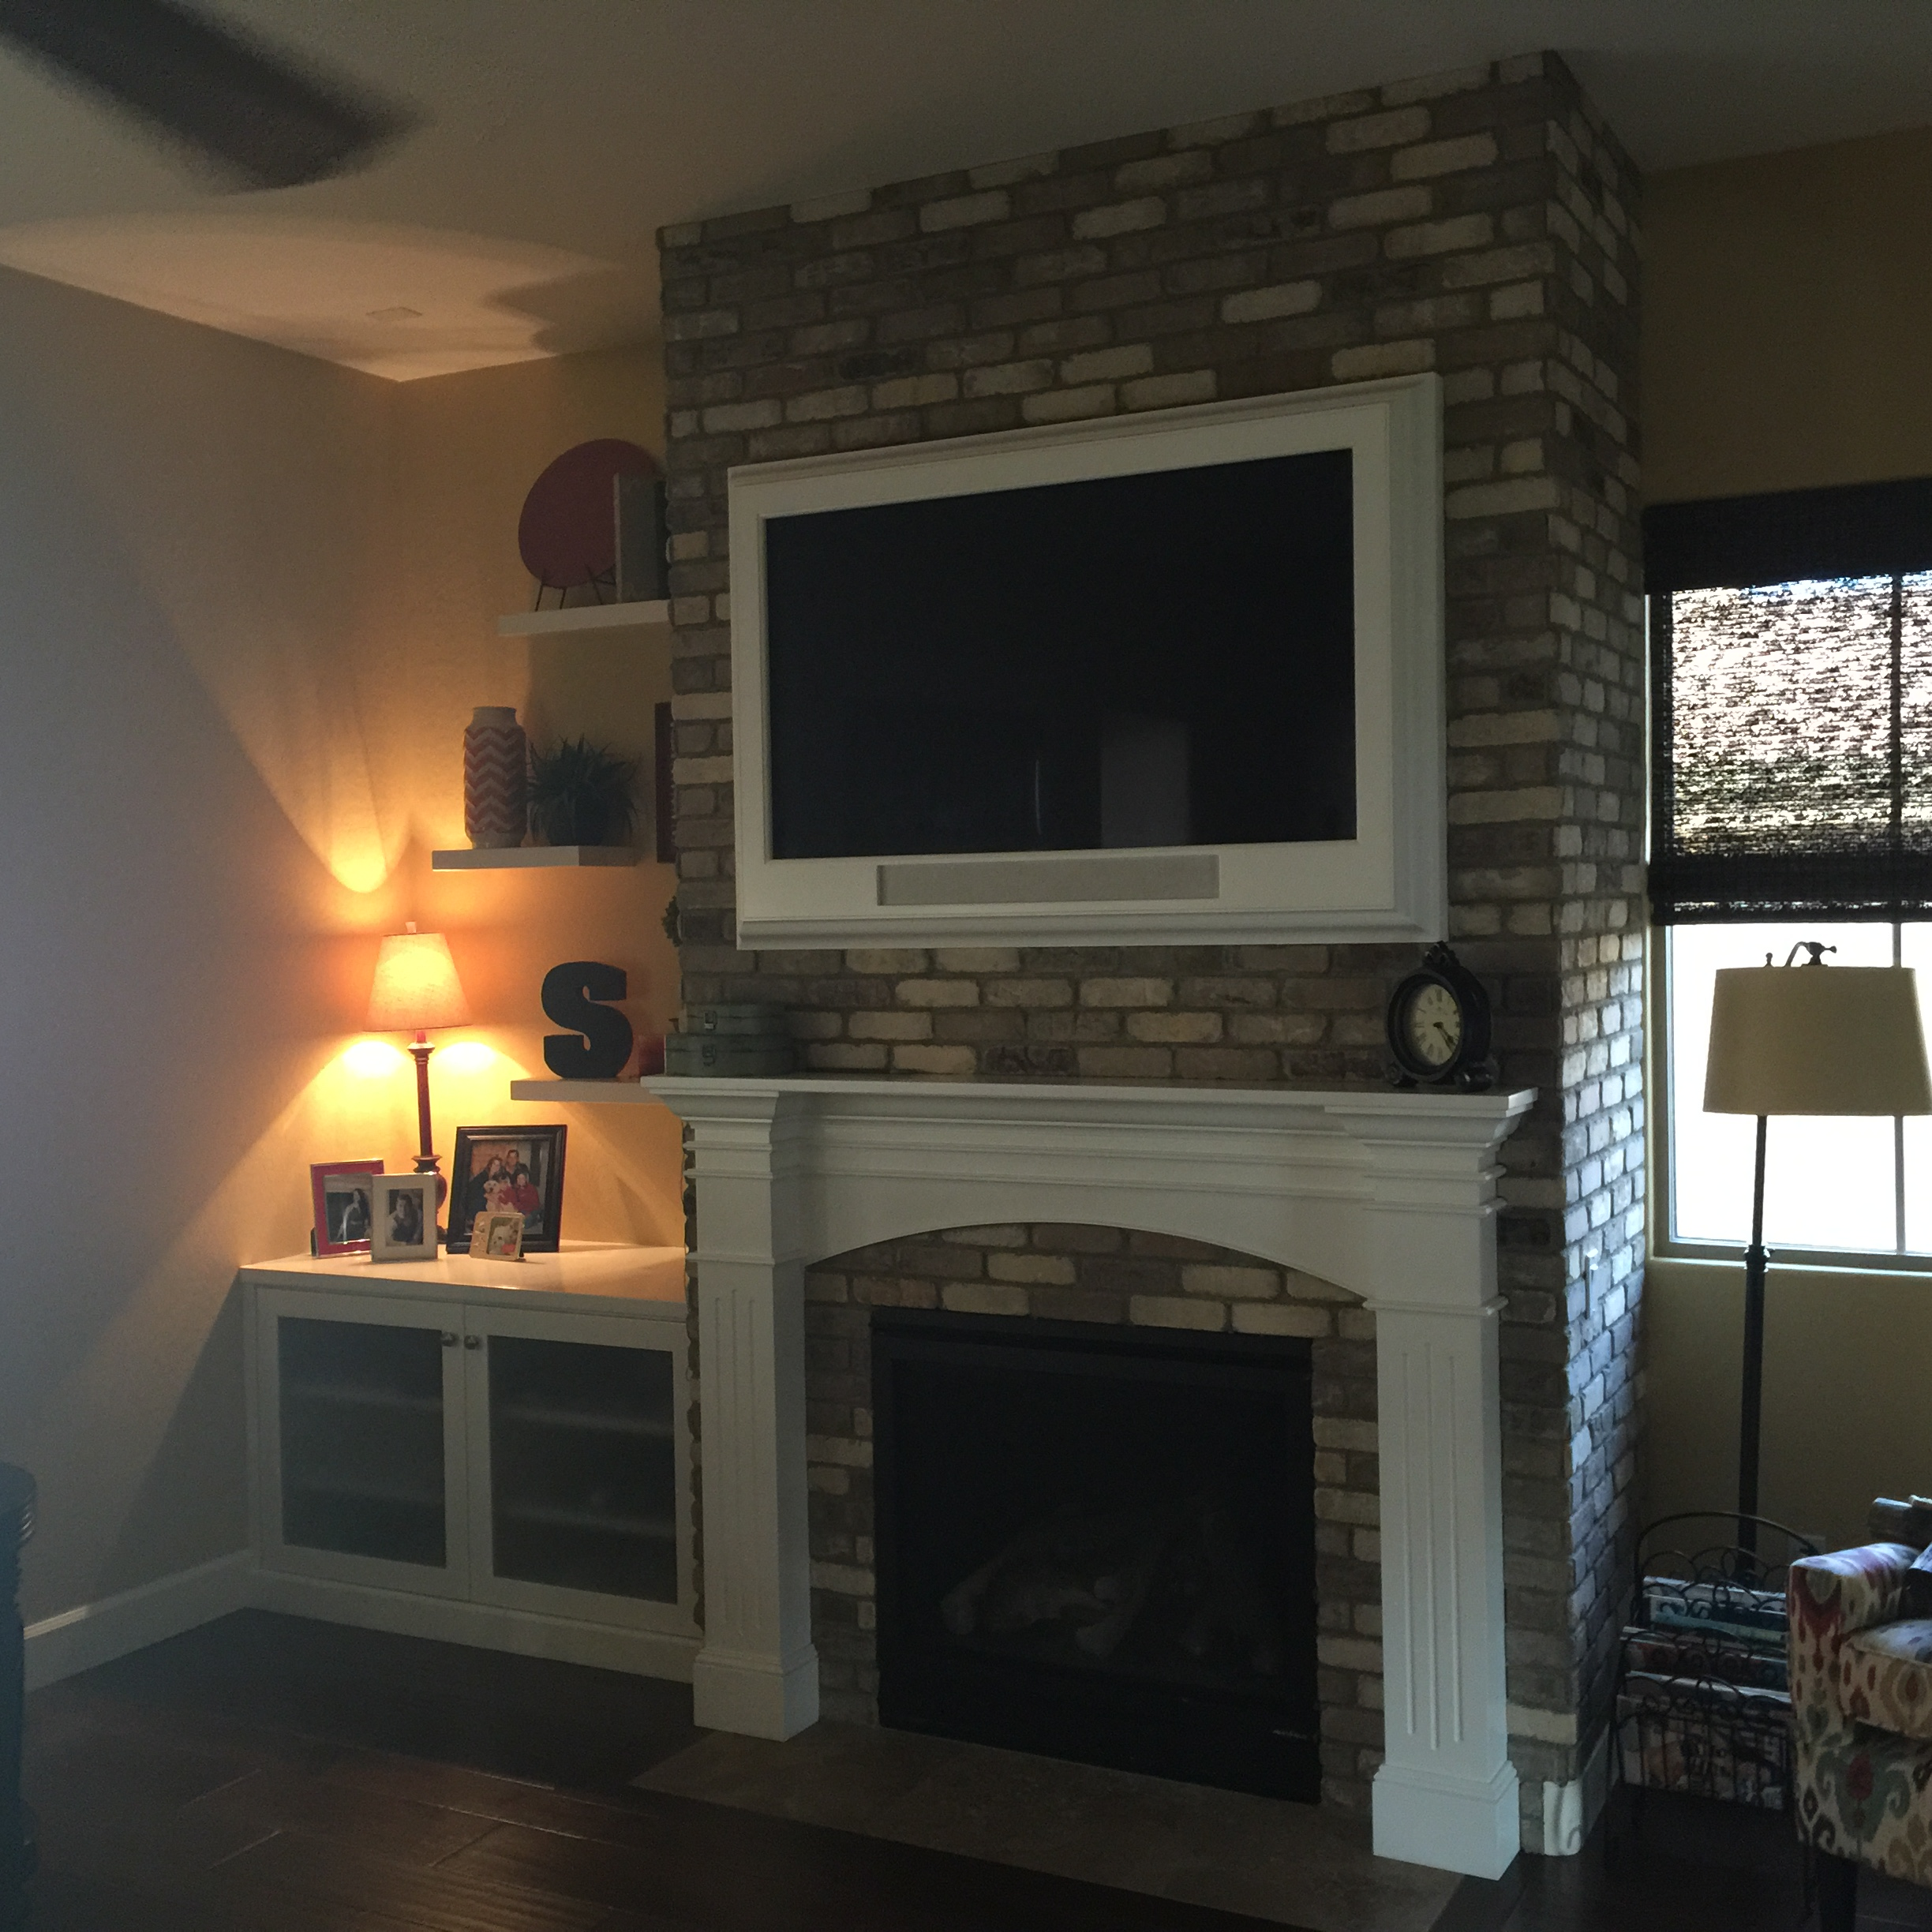 michigan granite com brick remodeling picture canton fireplace video oak renovation parkohome remodel